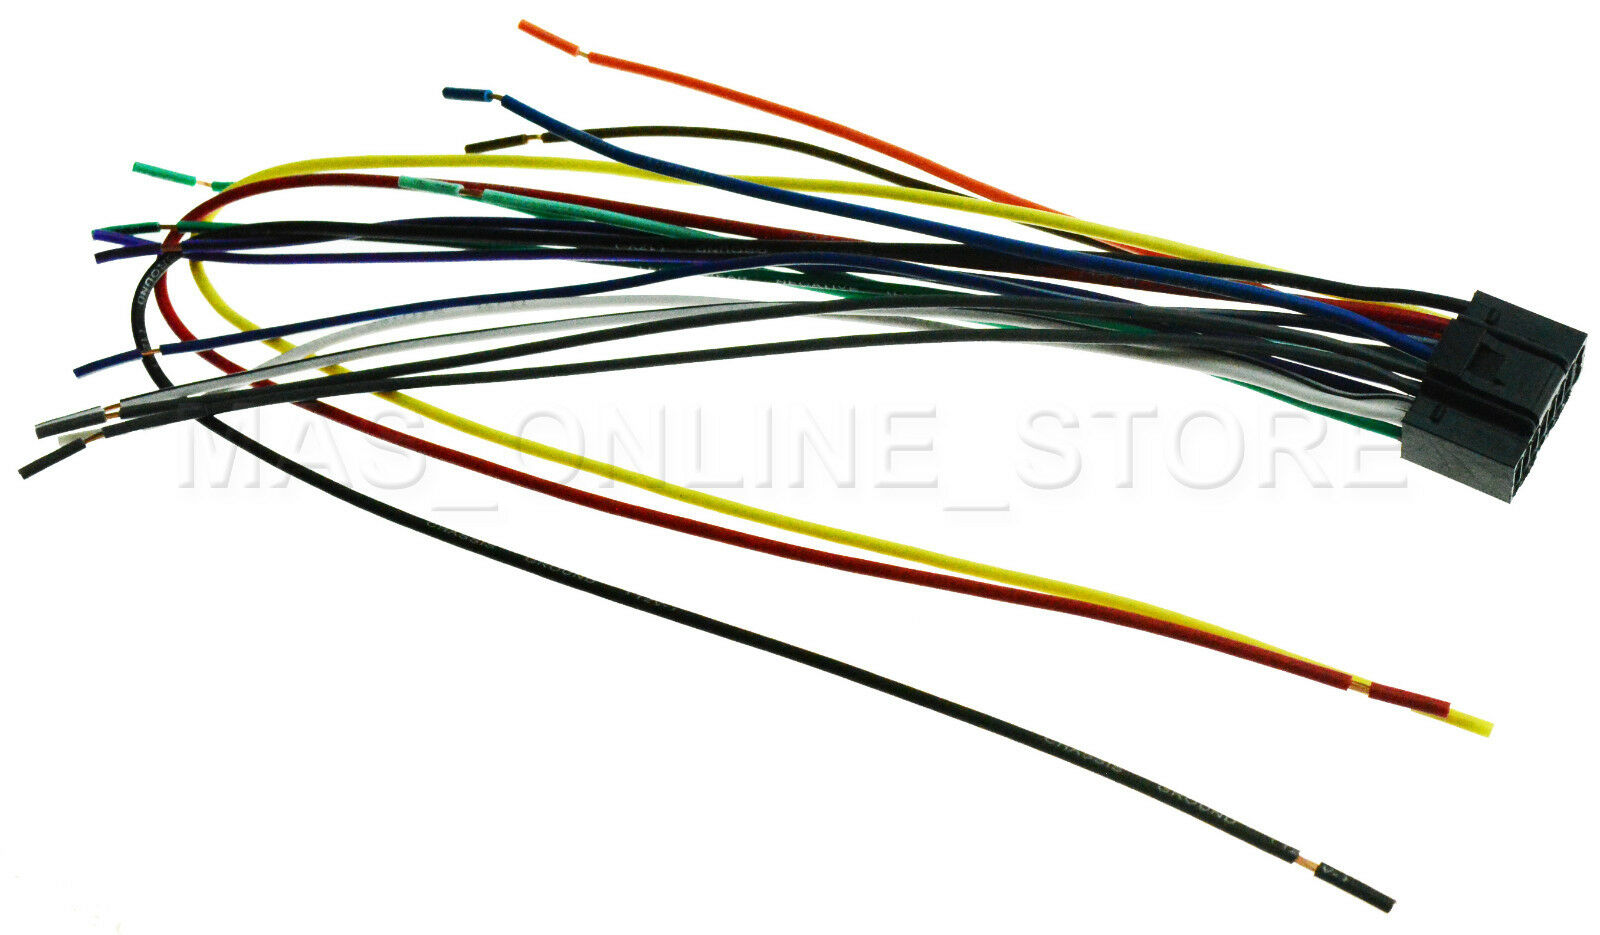 Wire Harness For Kenwood Dnx570Hd Dnx-570Hd *pay Today Ships Today* 1 of  4FREE Shipping Wire Harness For Kenwood ...